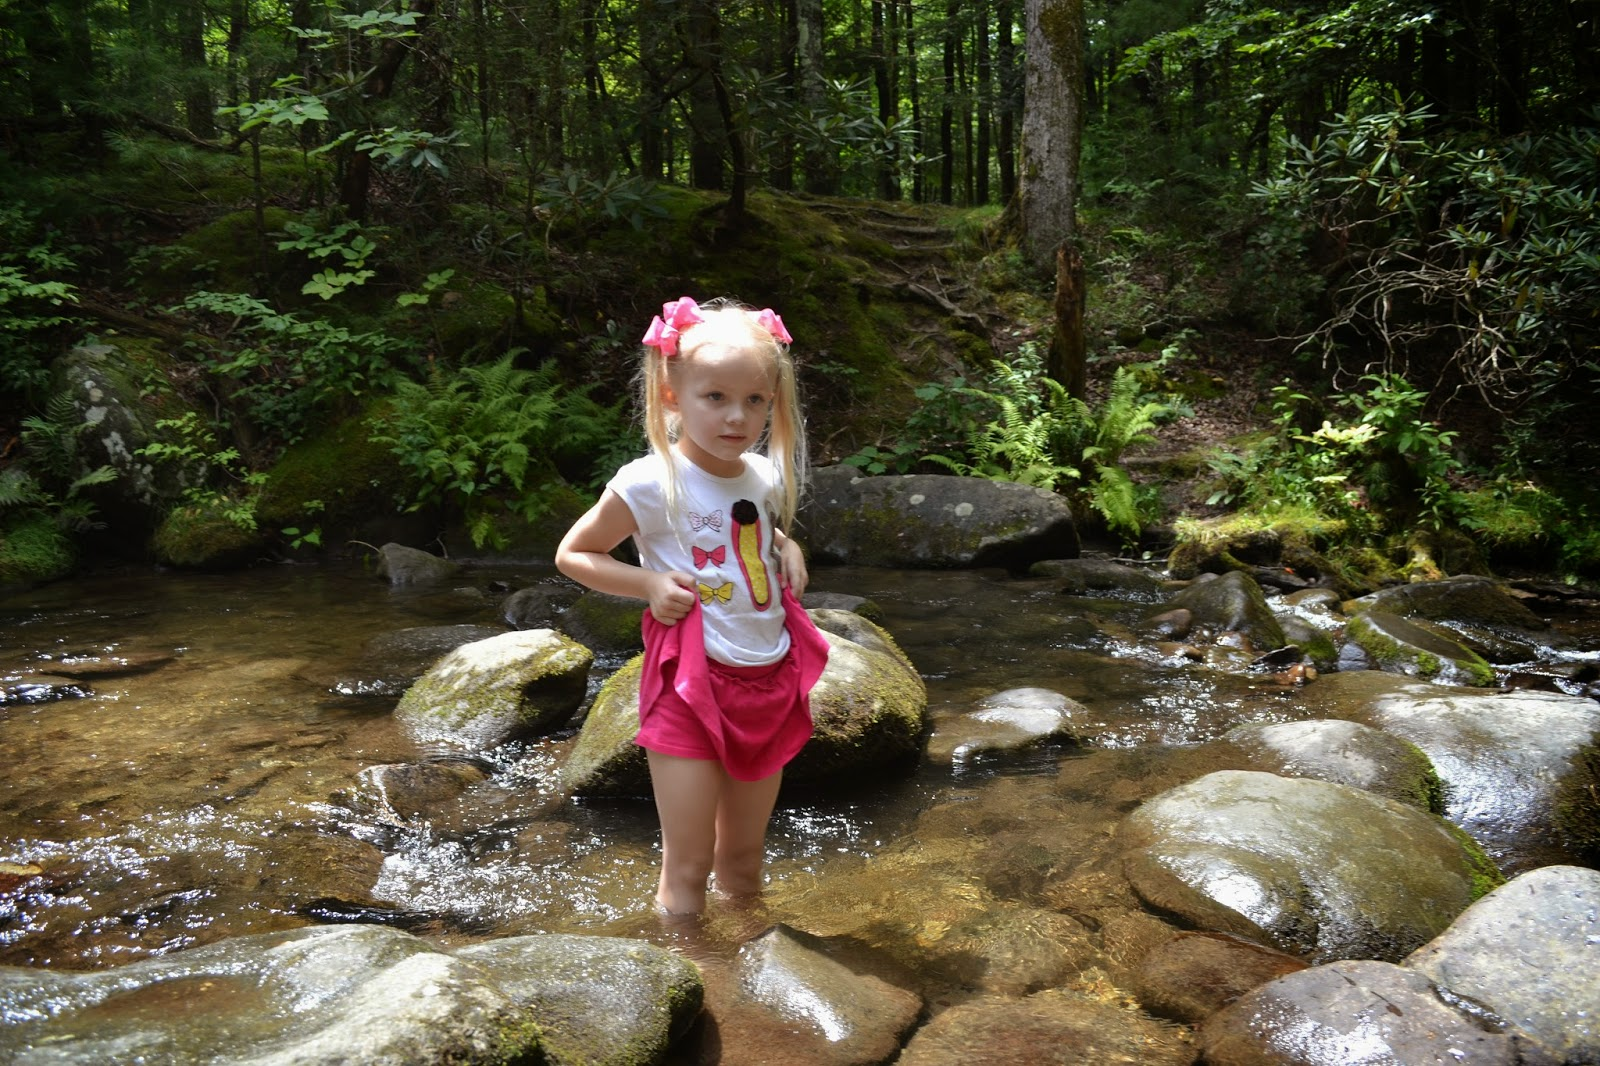 In the creek at Cades Cove